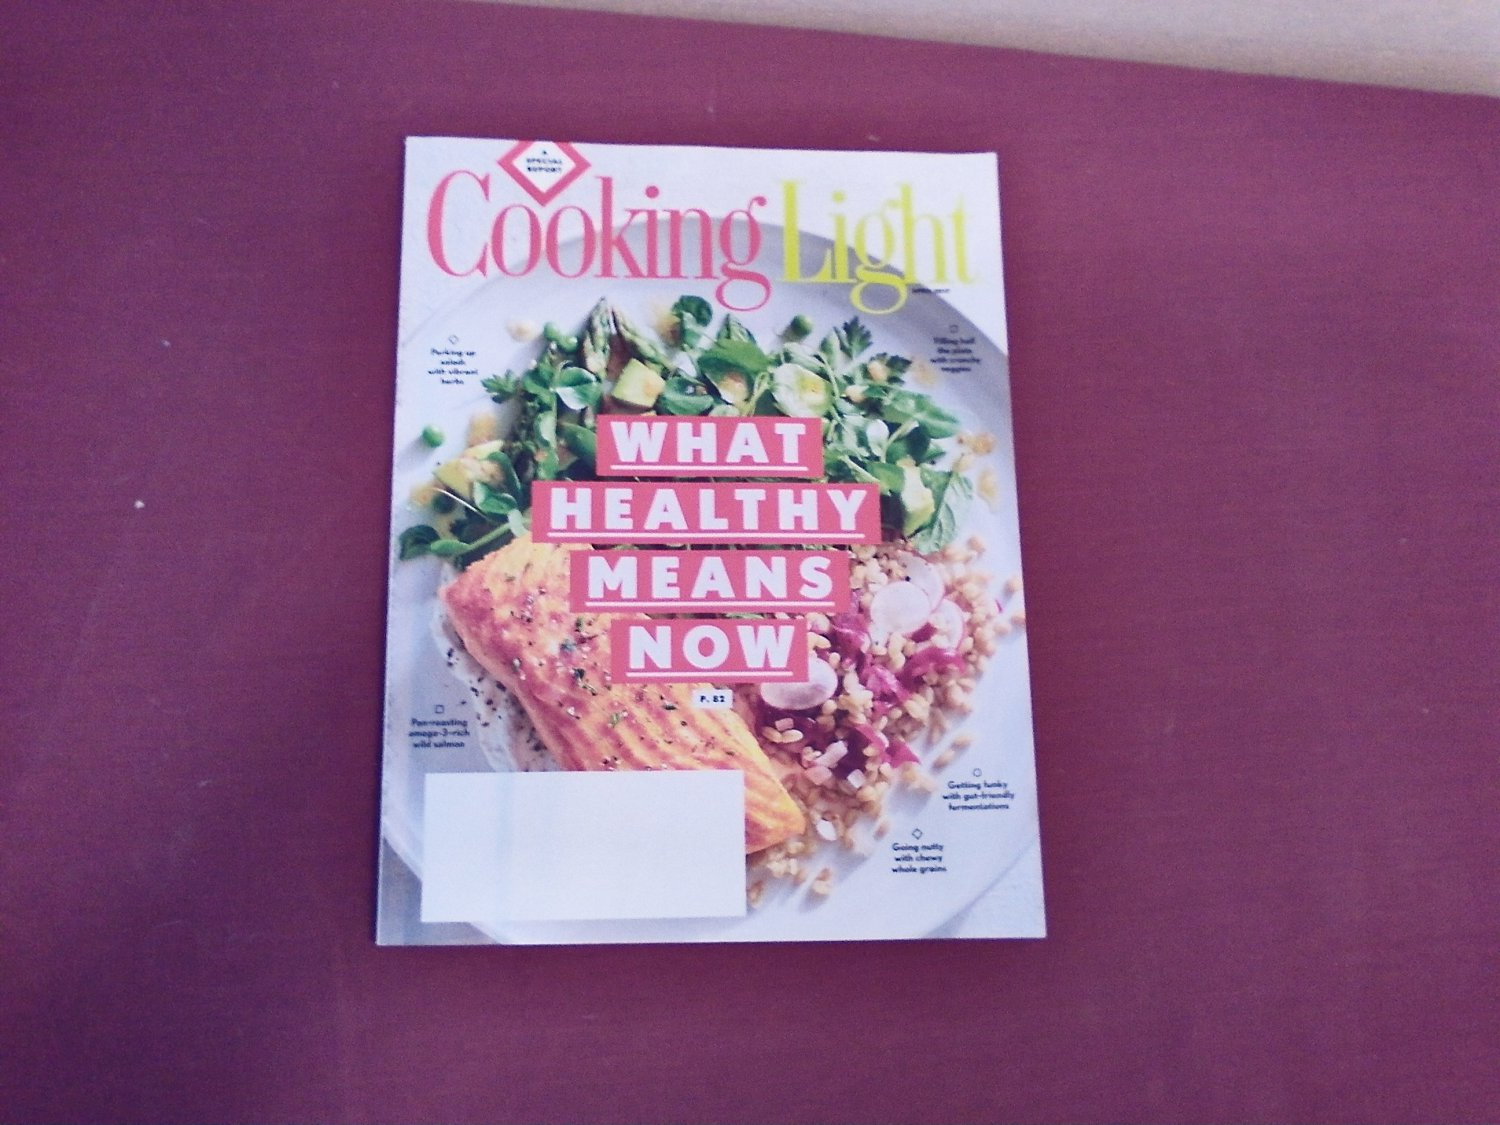 Cooking Light April 2017 Vol. 31 No. 3 - What Healthy Means Now A Special Report